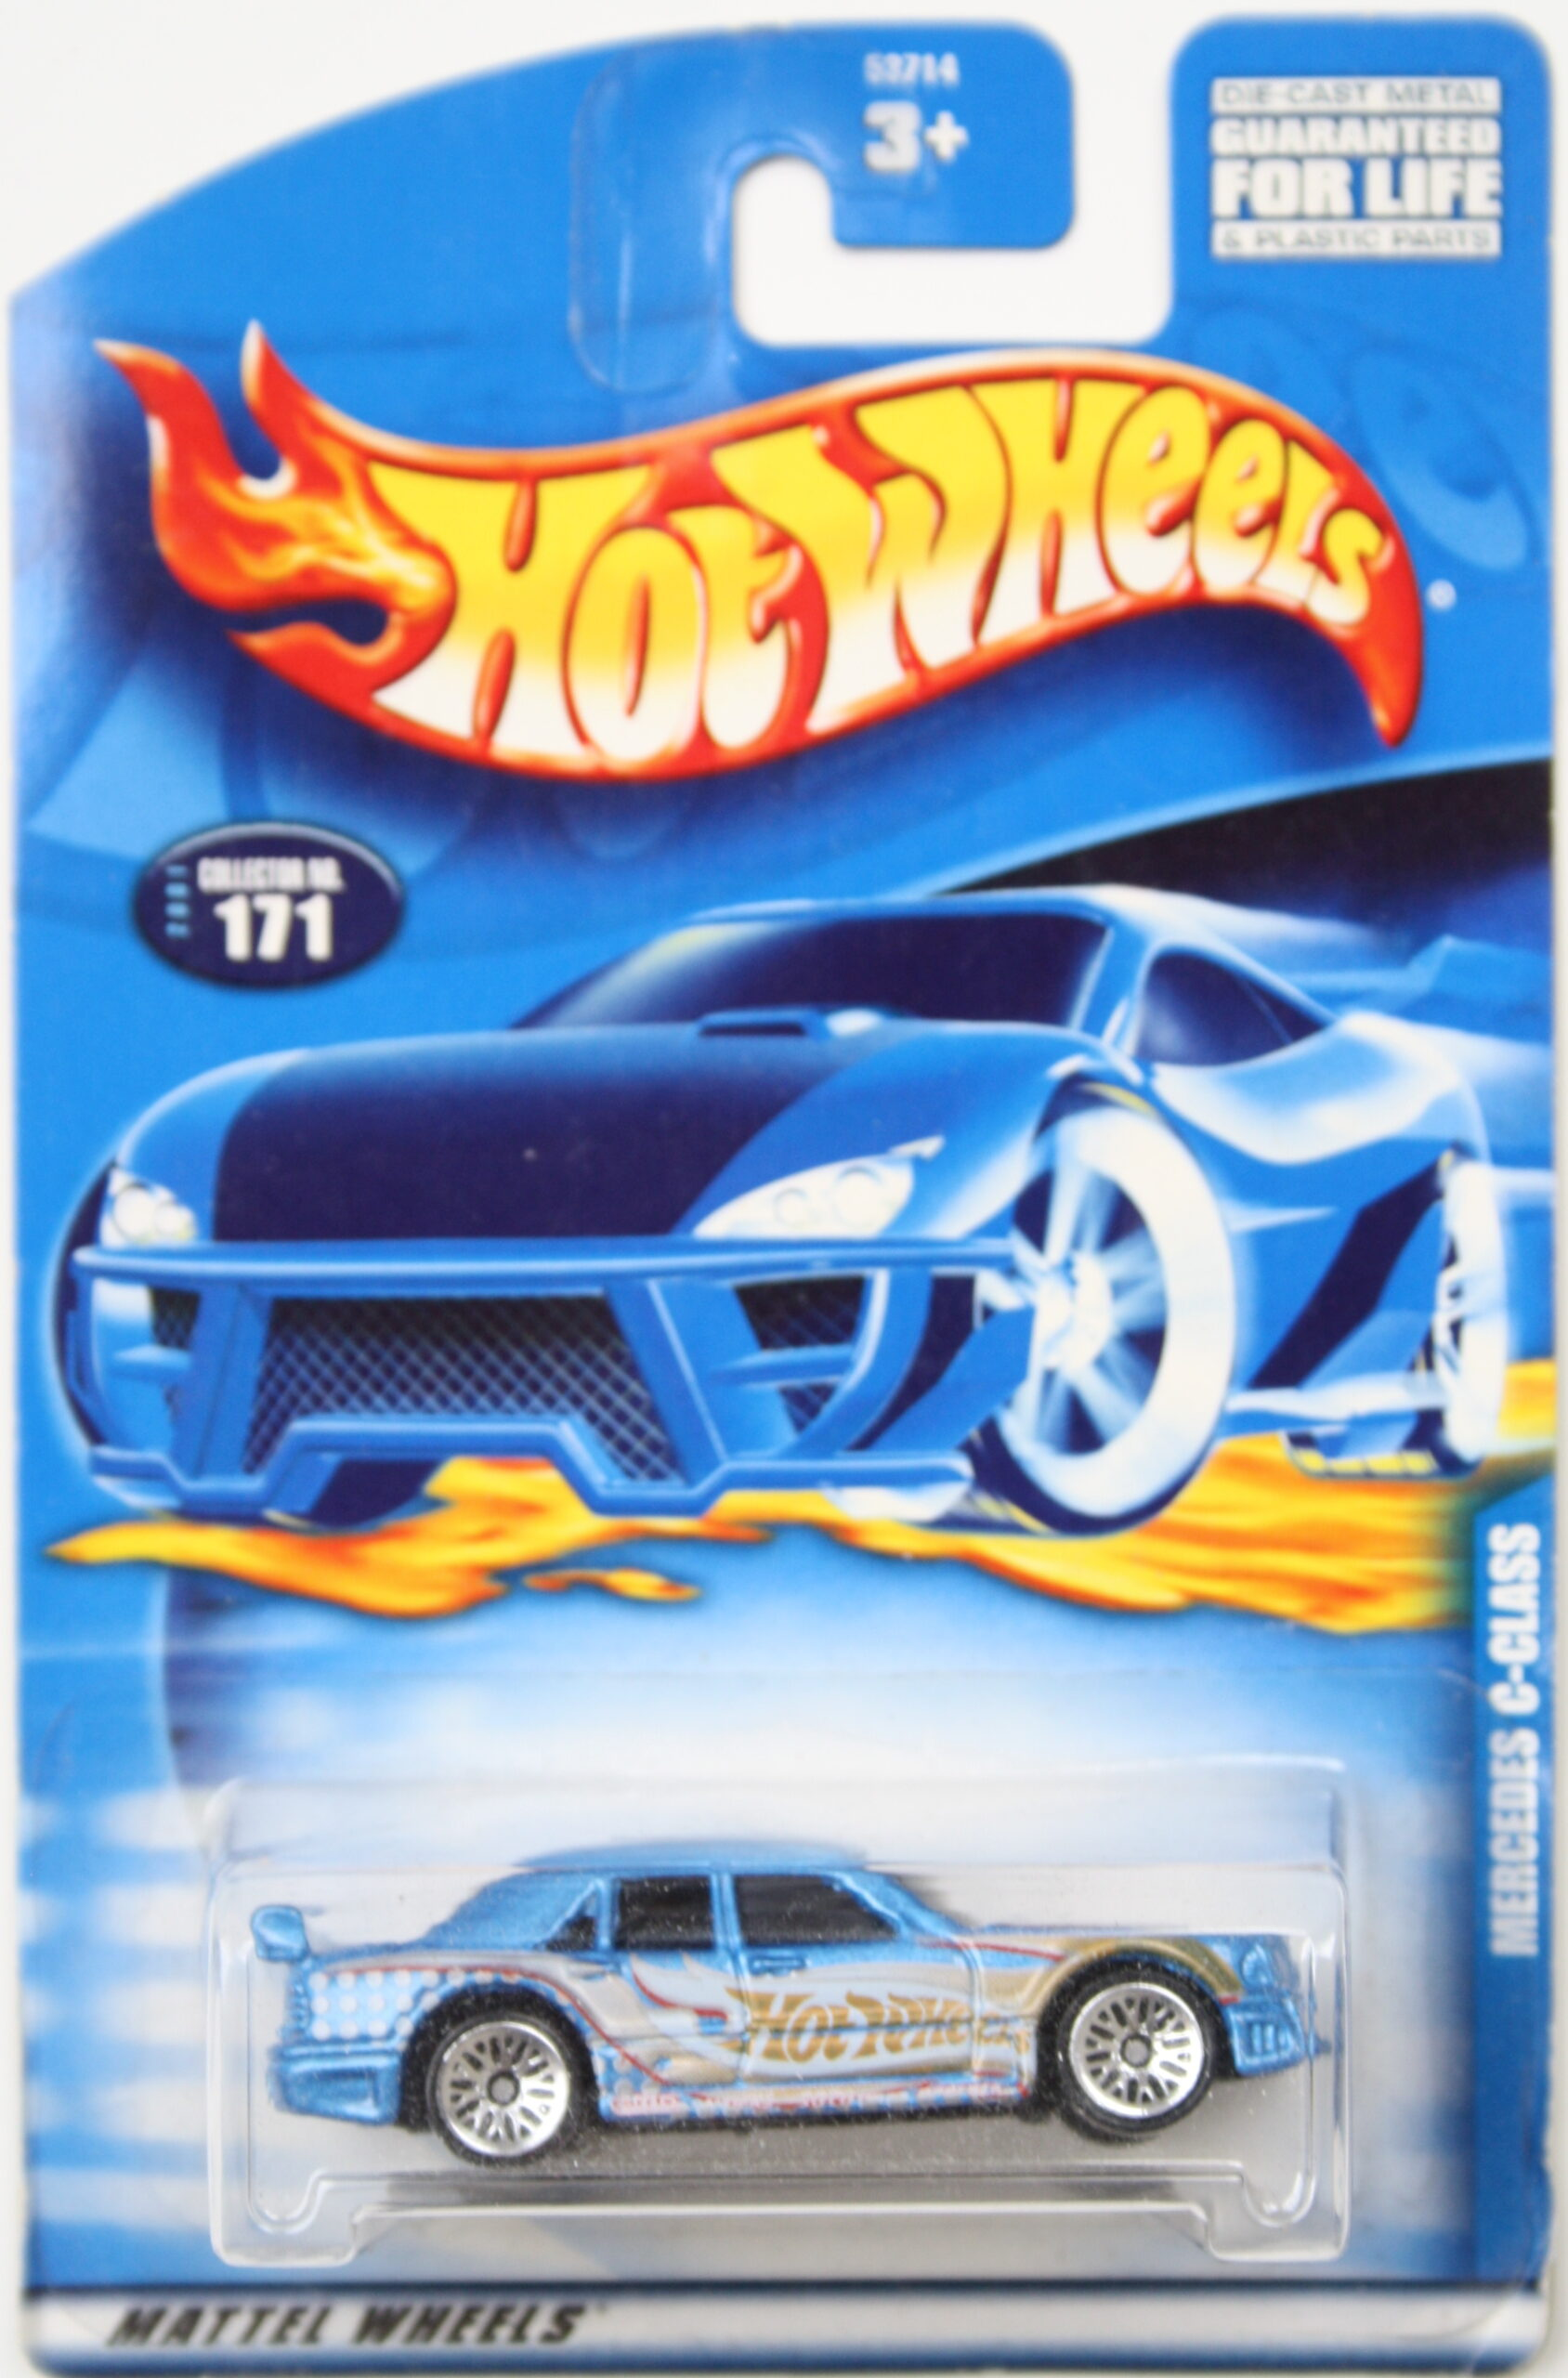 Hot Wheels Mercedes C-class Hot Wheels light blue and white